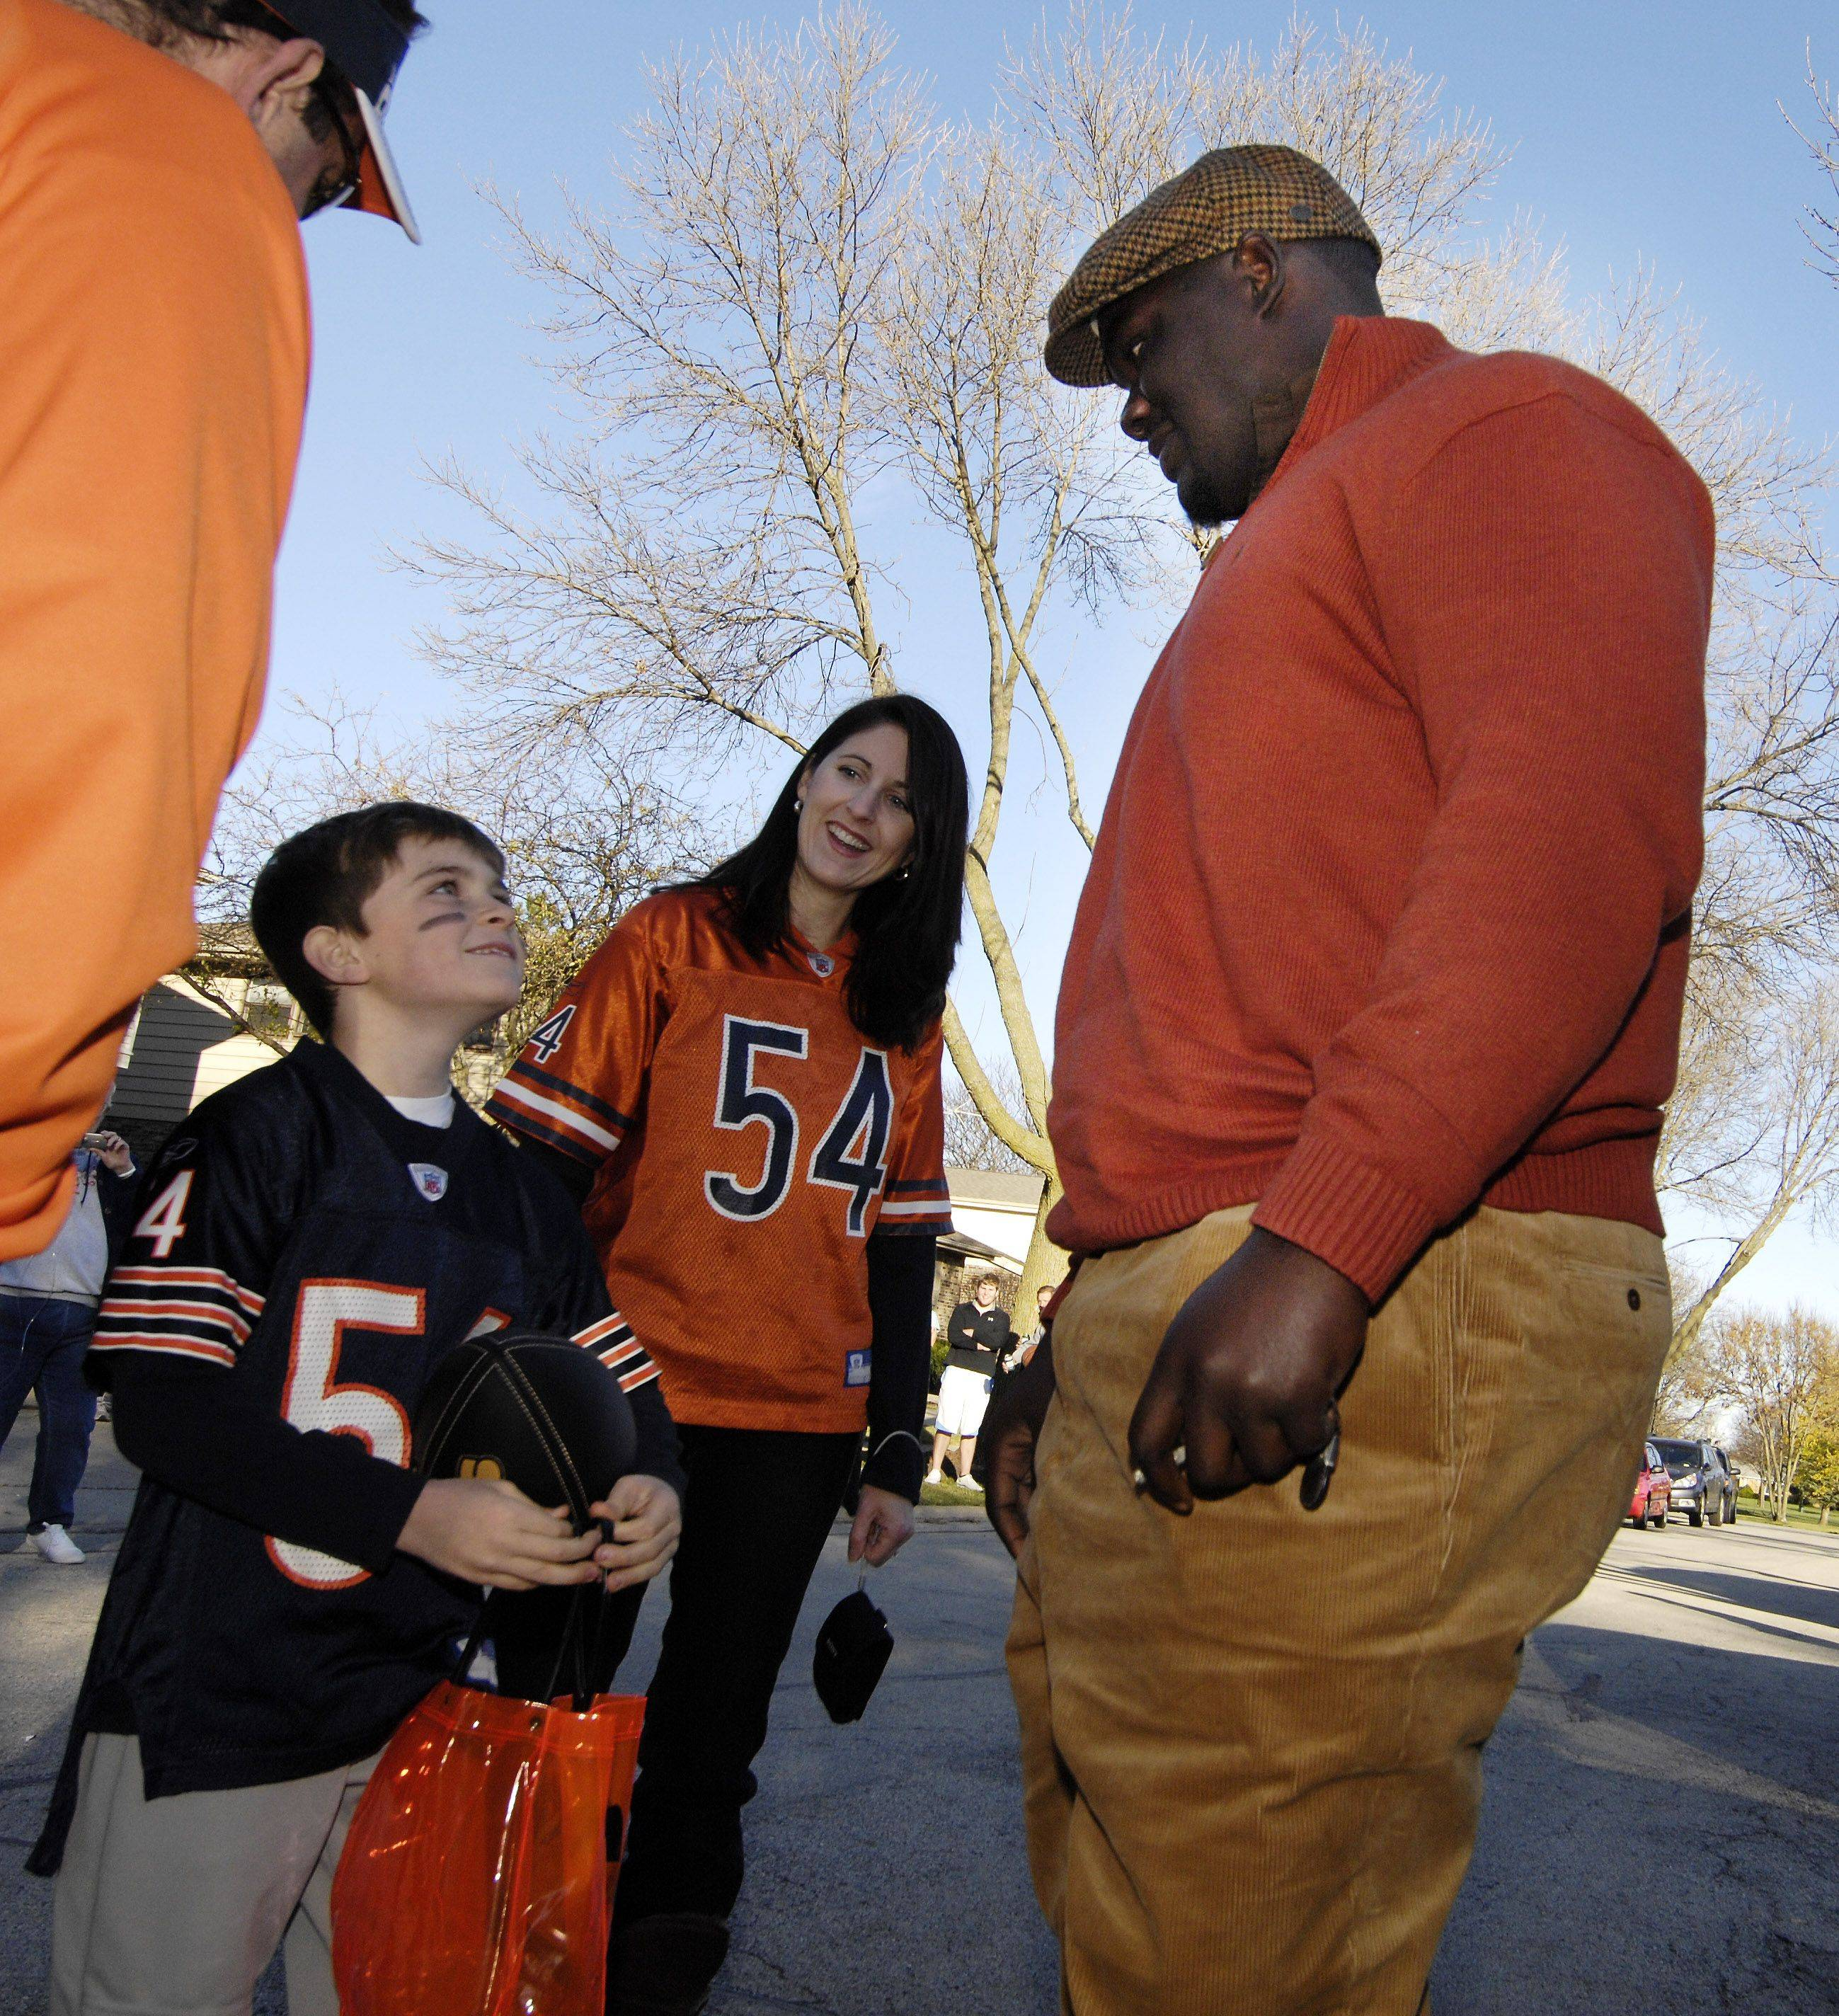 Nine-year-old Ryan Politzki of Arlington Heights and his mom Stacey meet Chicago Bear Tommie Harris for some trick-or-treating. Ryan won a contest sponsored by Goodwill to go trick-or-treating with the football star.